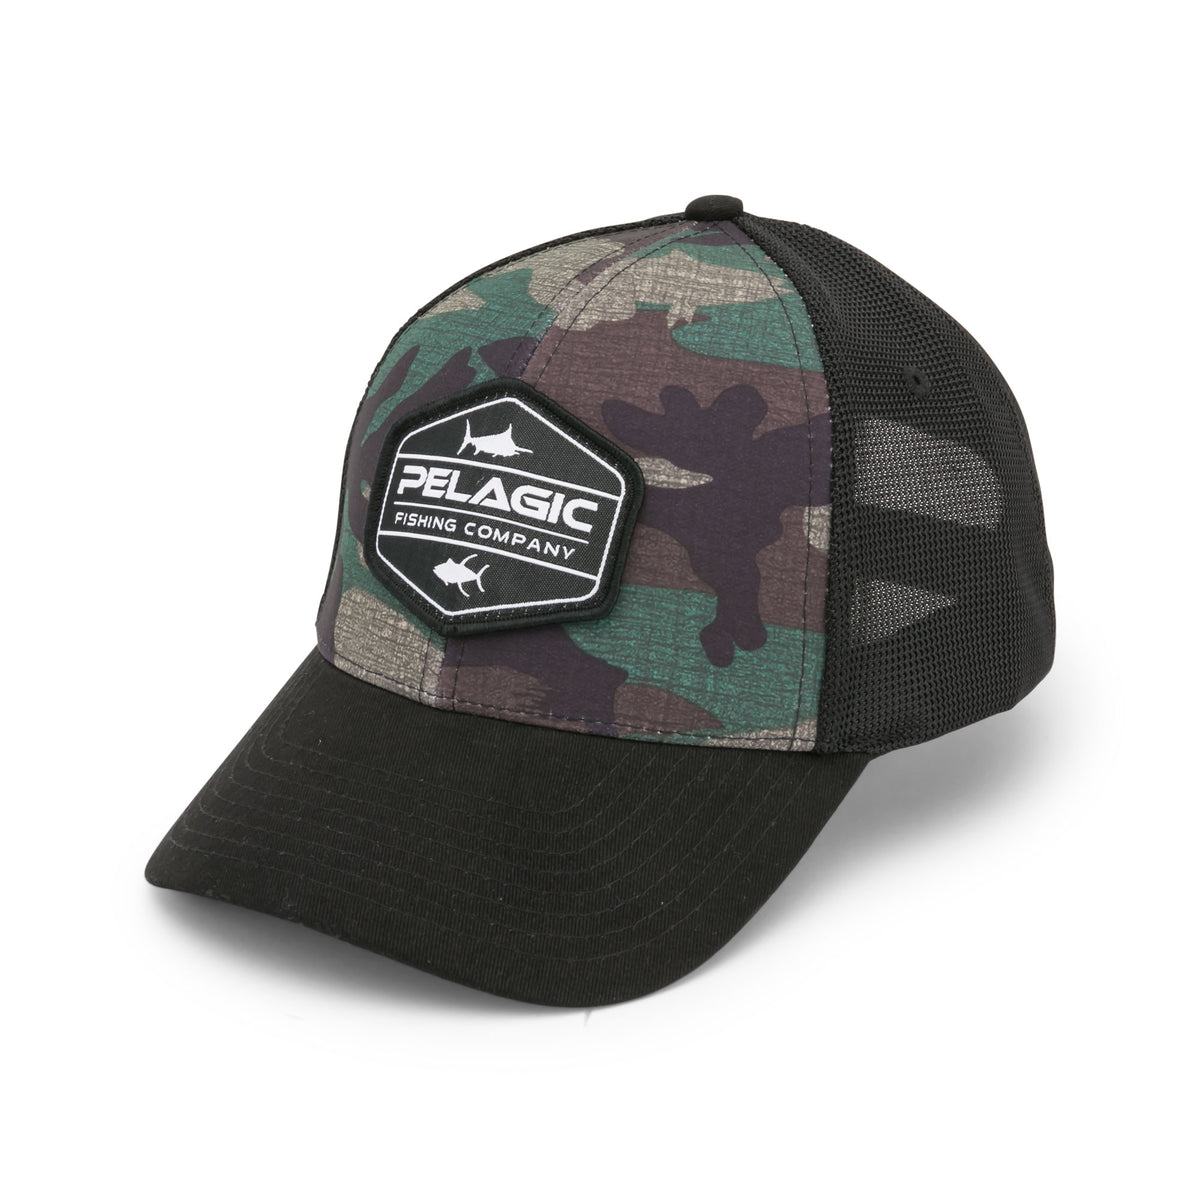 Pelagic High Performance Offshore Print Fishing Adjustable Hat in Americamo Grey